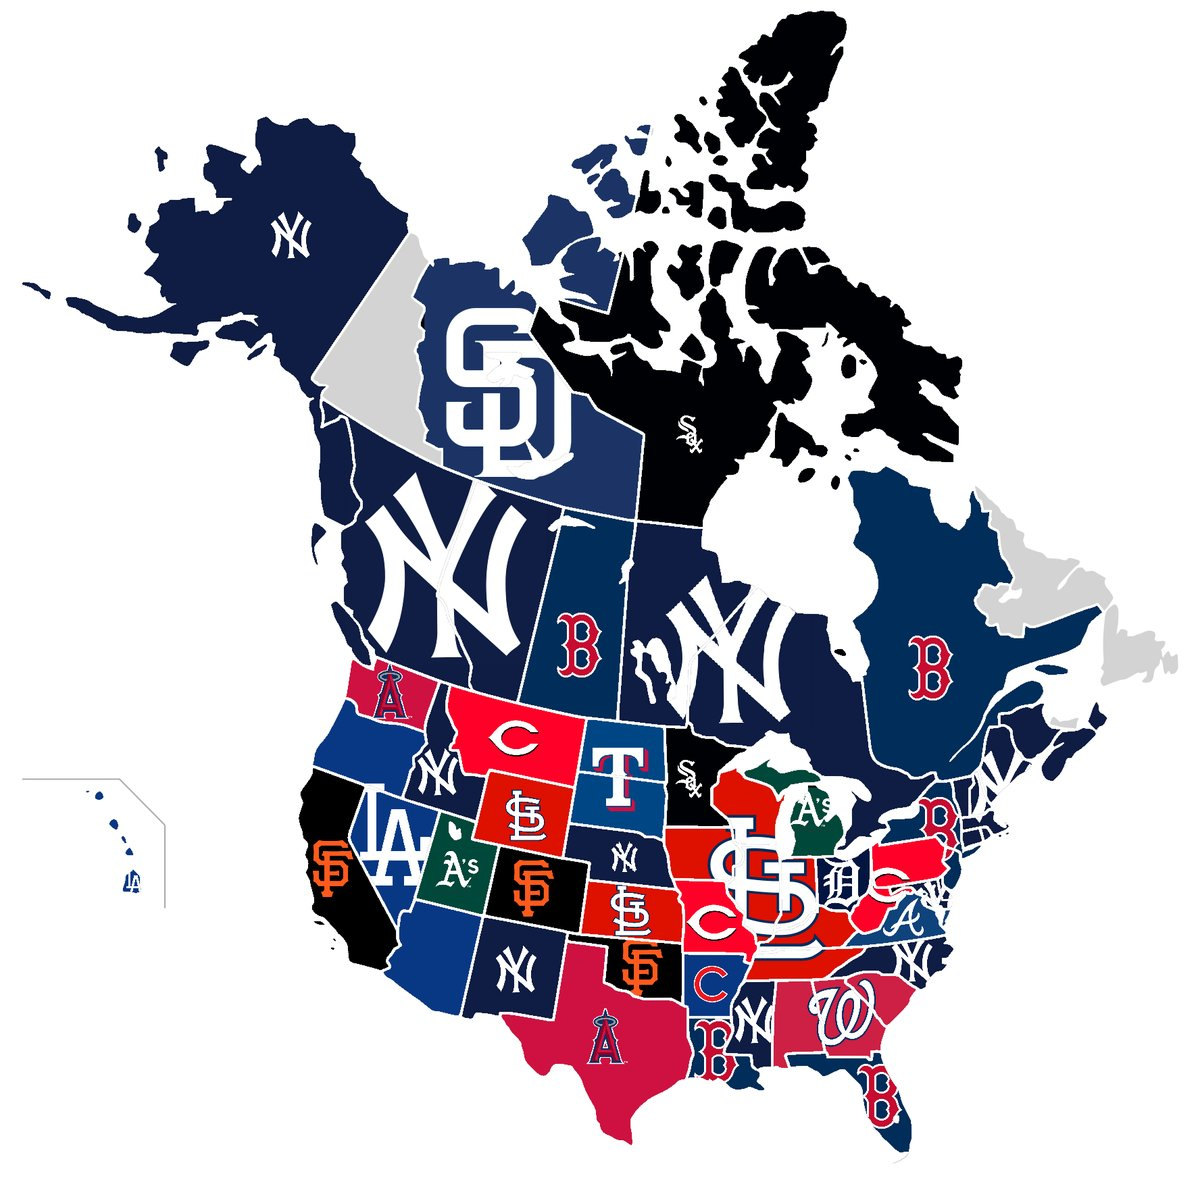 This most d MLB team state map leads to more questions ... Map Of Nhl Fan Territory on mlb blackout map, nhl canada map, nhl country map, nhl fan map, nhl division map, most hated nfl team map, nhl region map, nhl city map, nhl market map, nhl state map, nhl team map, nhl history,